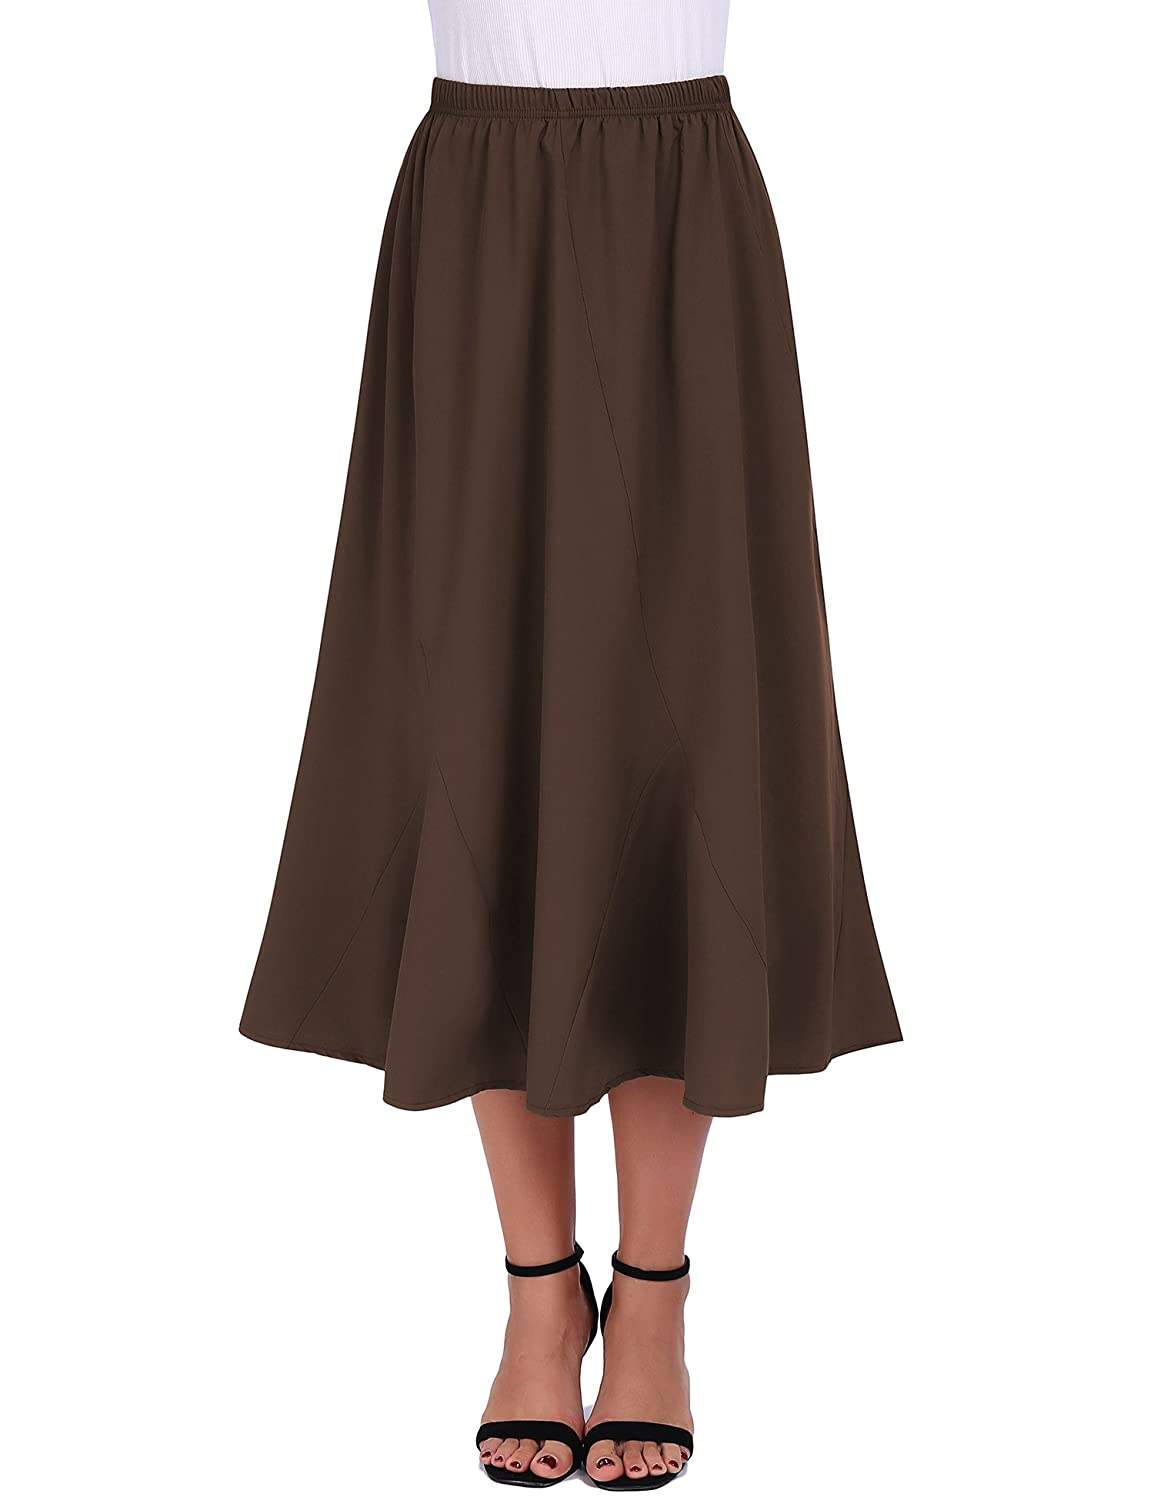 a4a48c9b22 Fashion Women's Skirts Feature: Loose ruffled design, High elastic waist,  Irregular design, A-Line pleated pattern, Below knee length, Knit lining,  ...